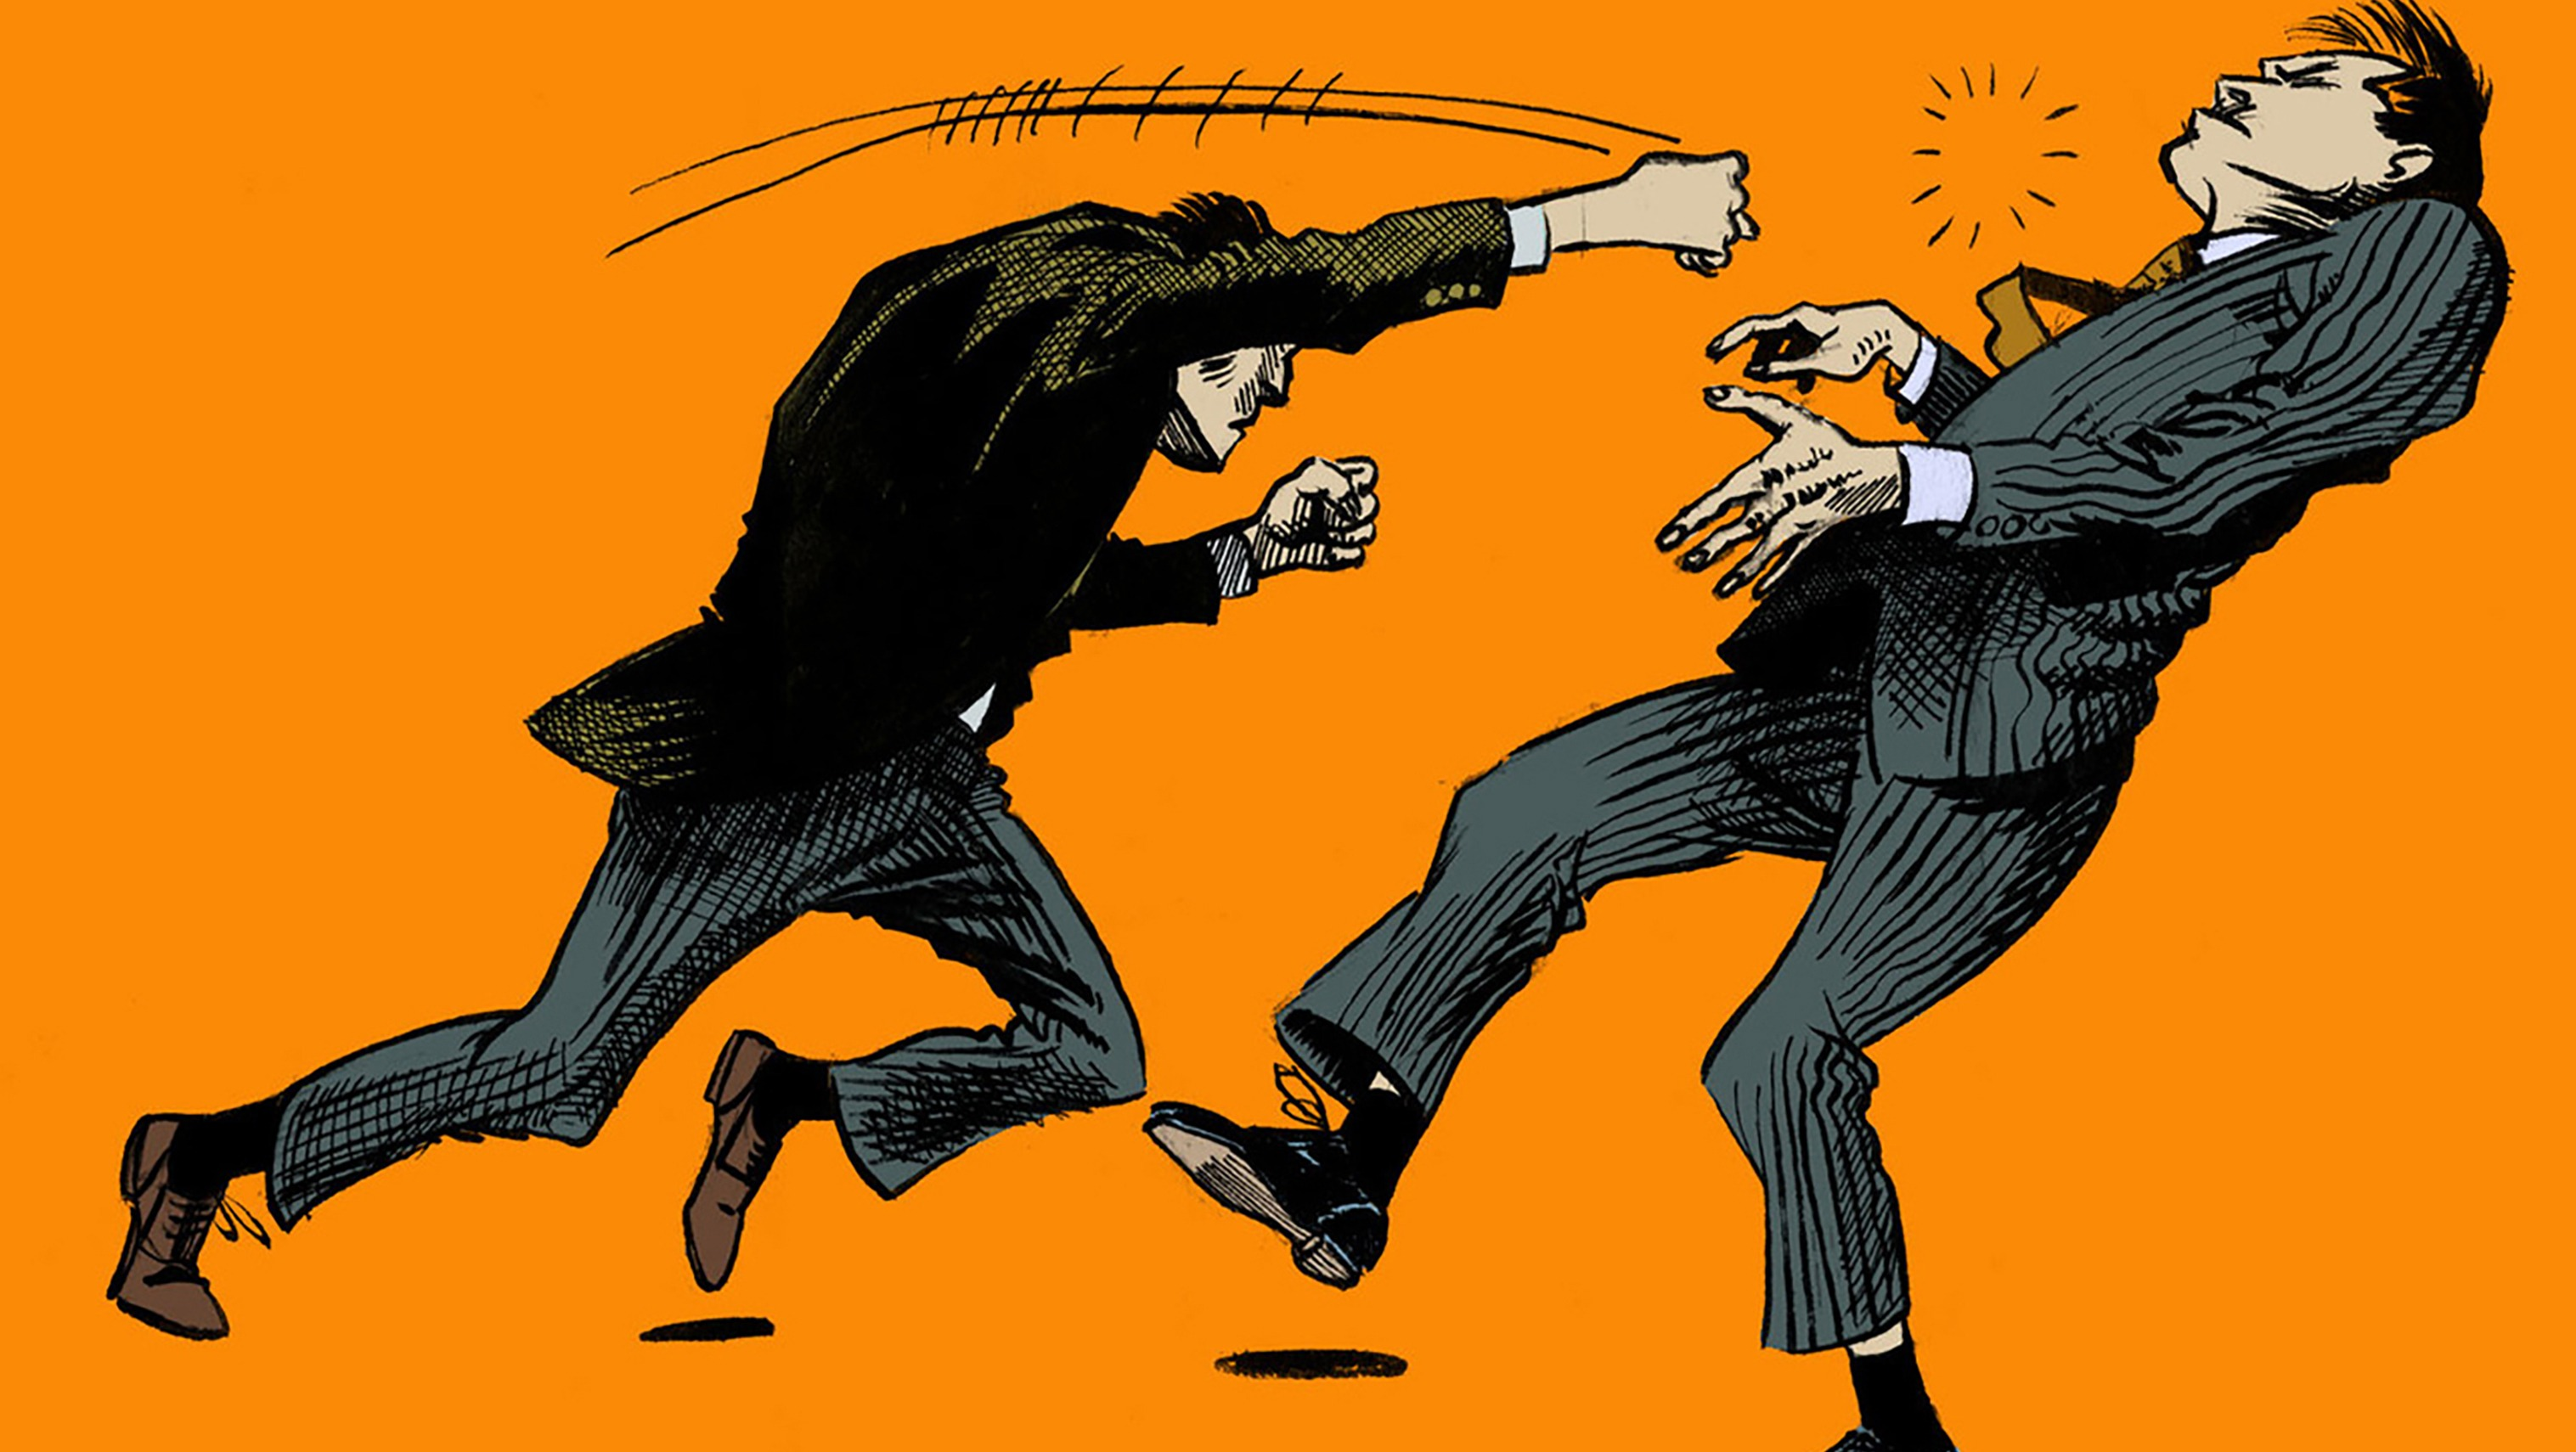 illustration of two men in suits fighting.